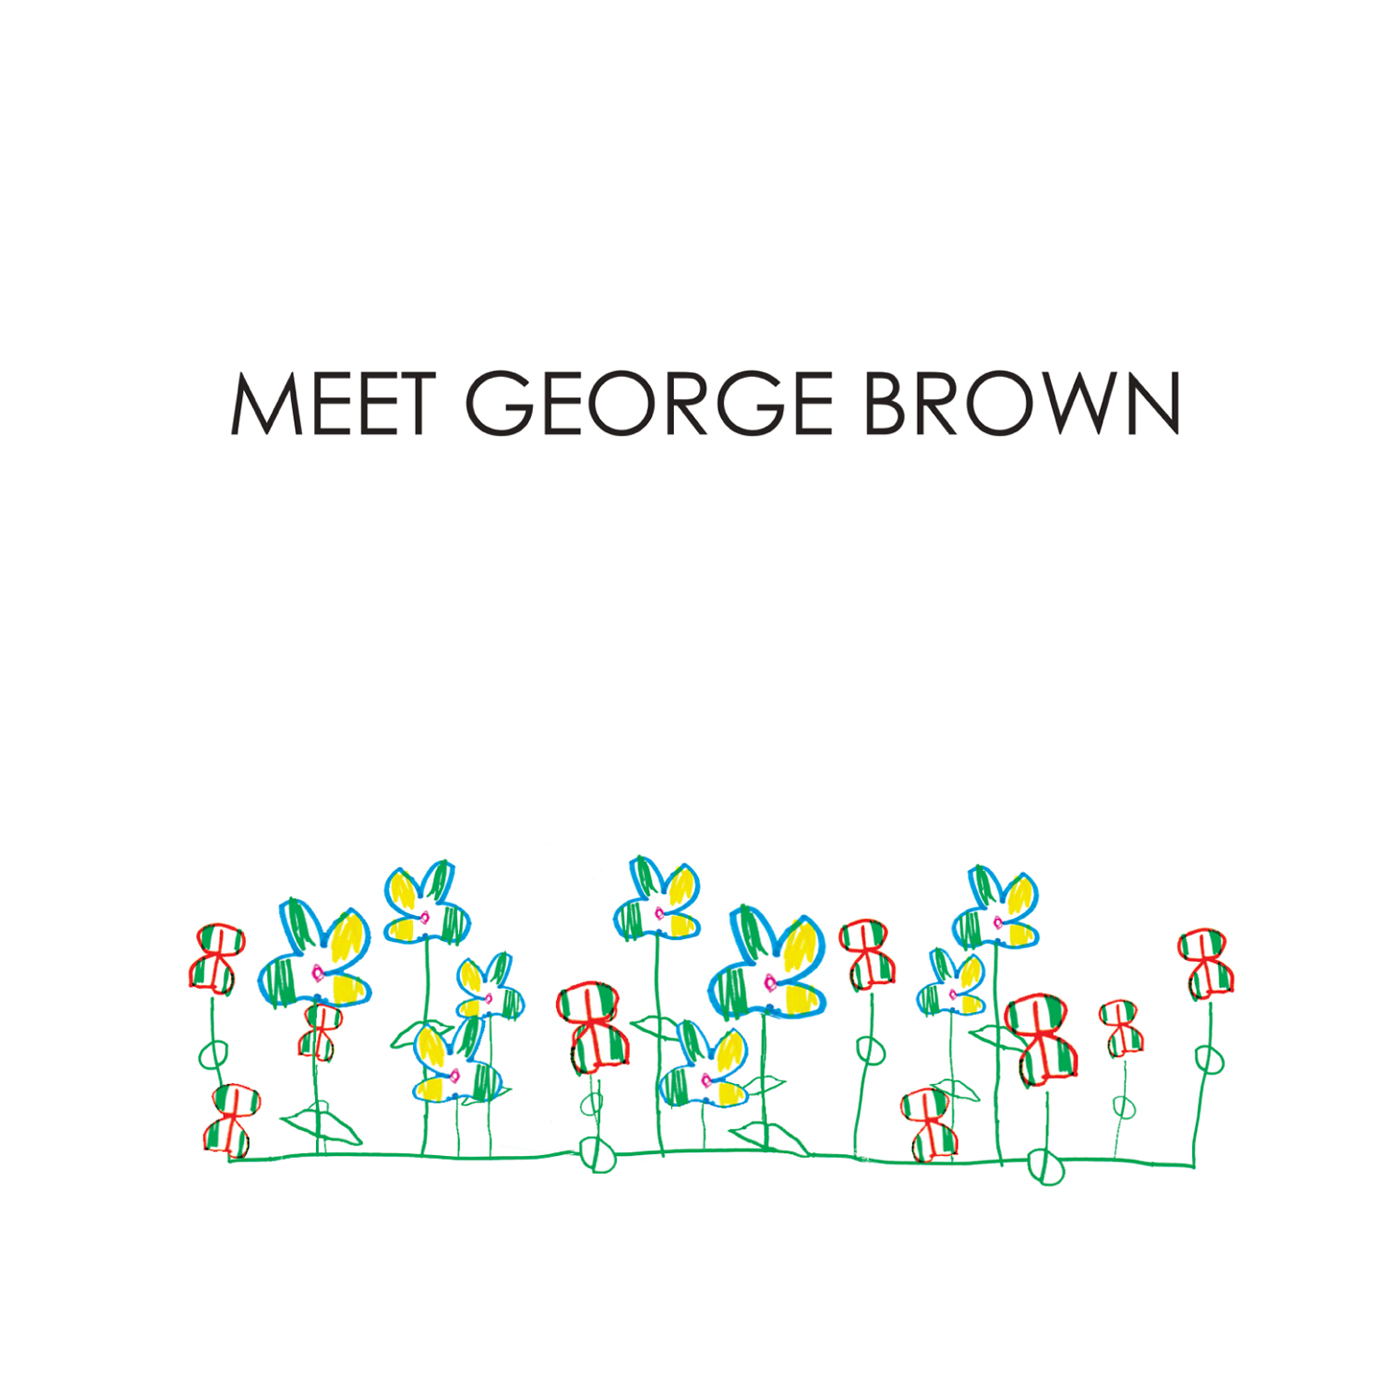 Meet george brown